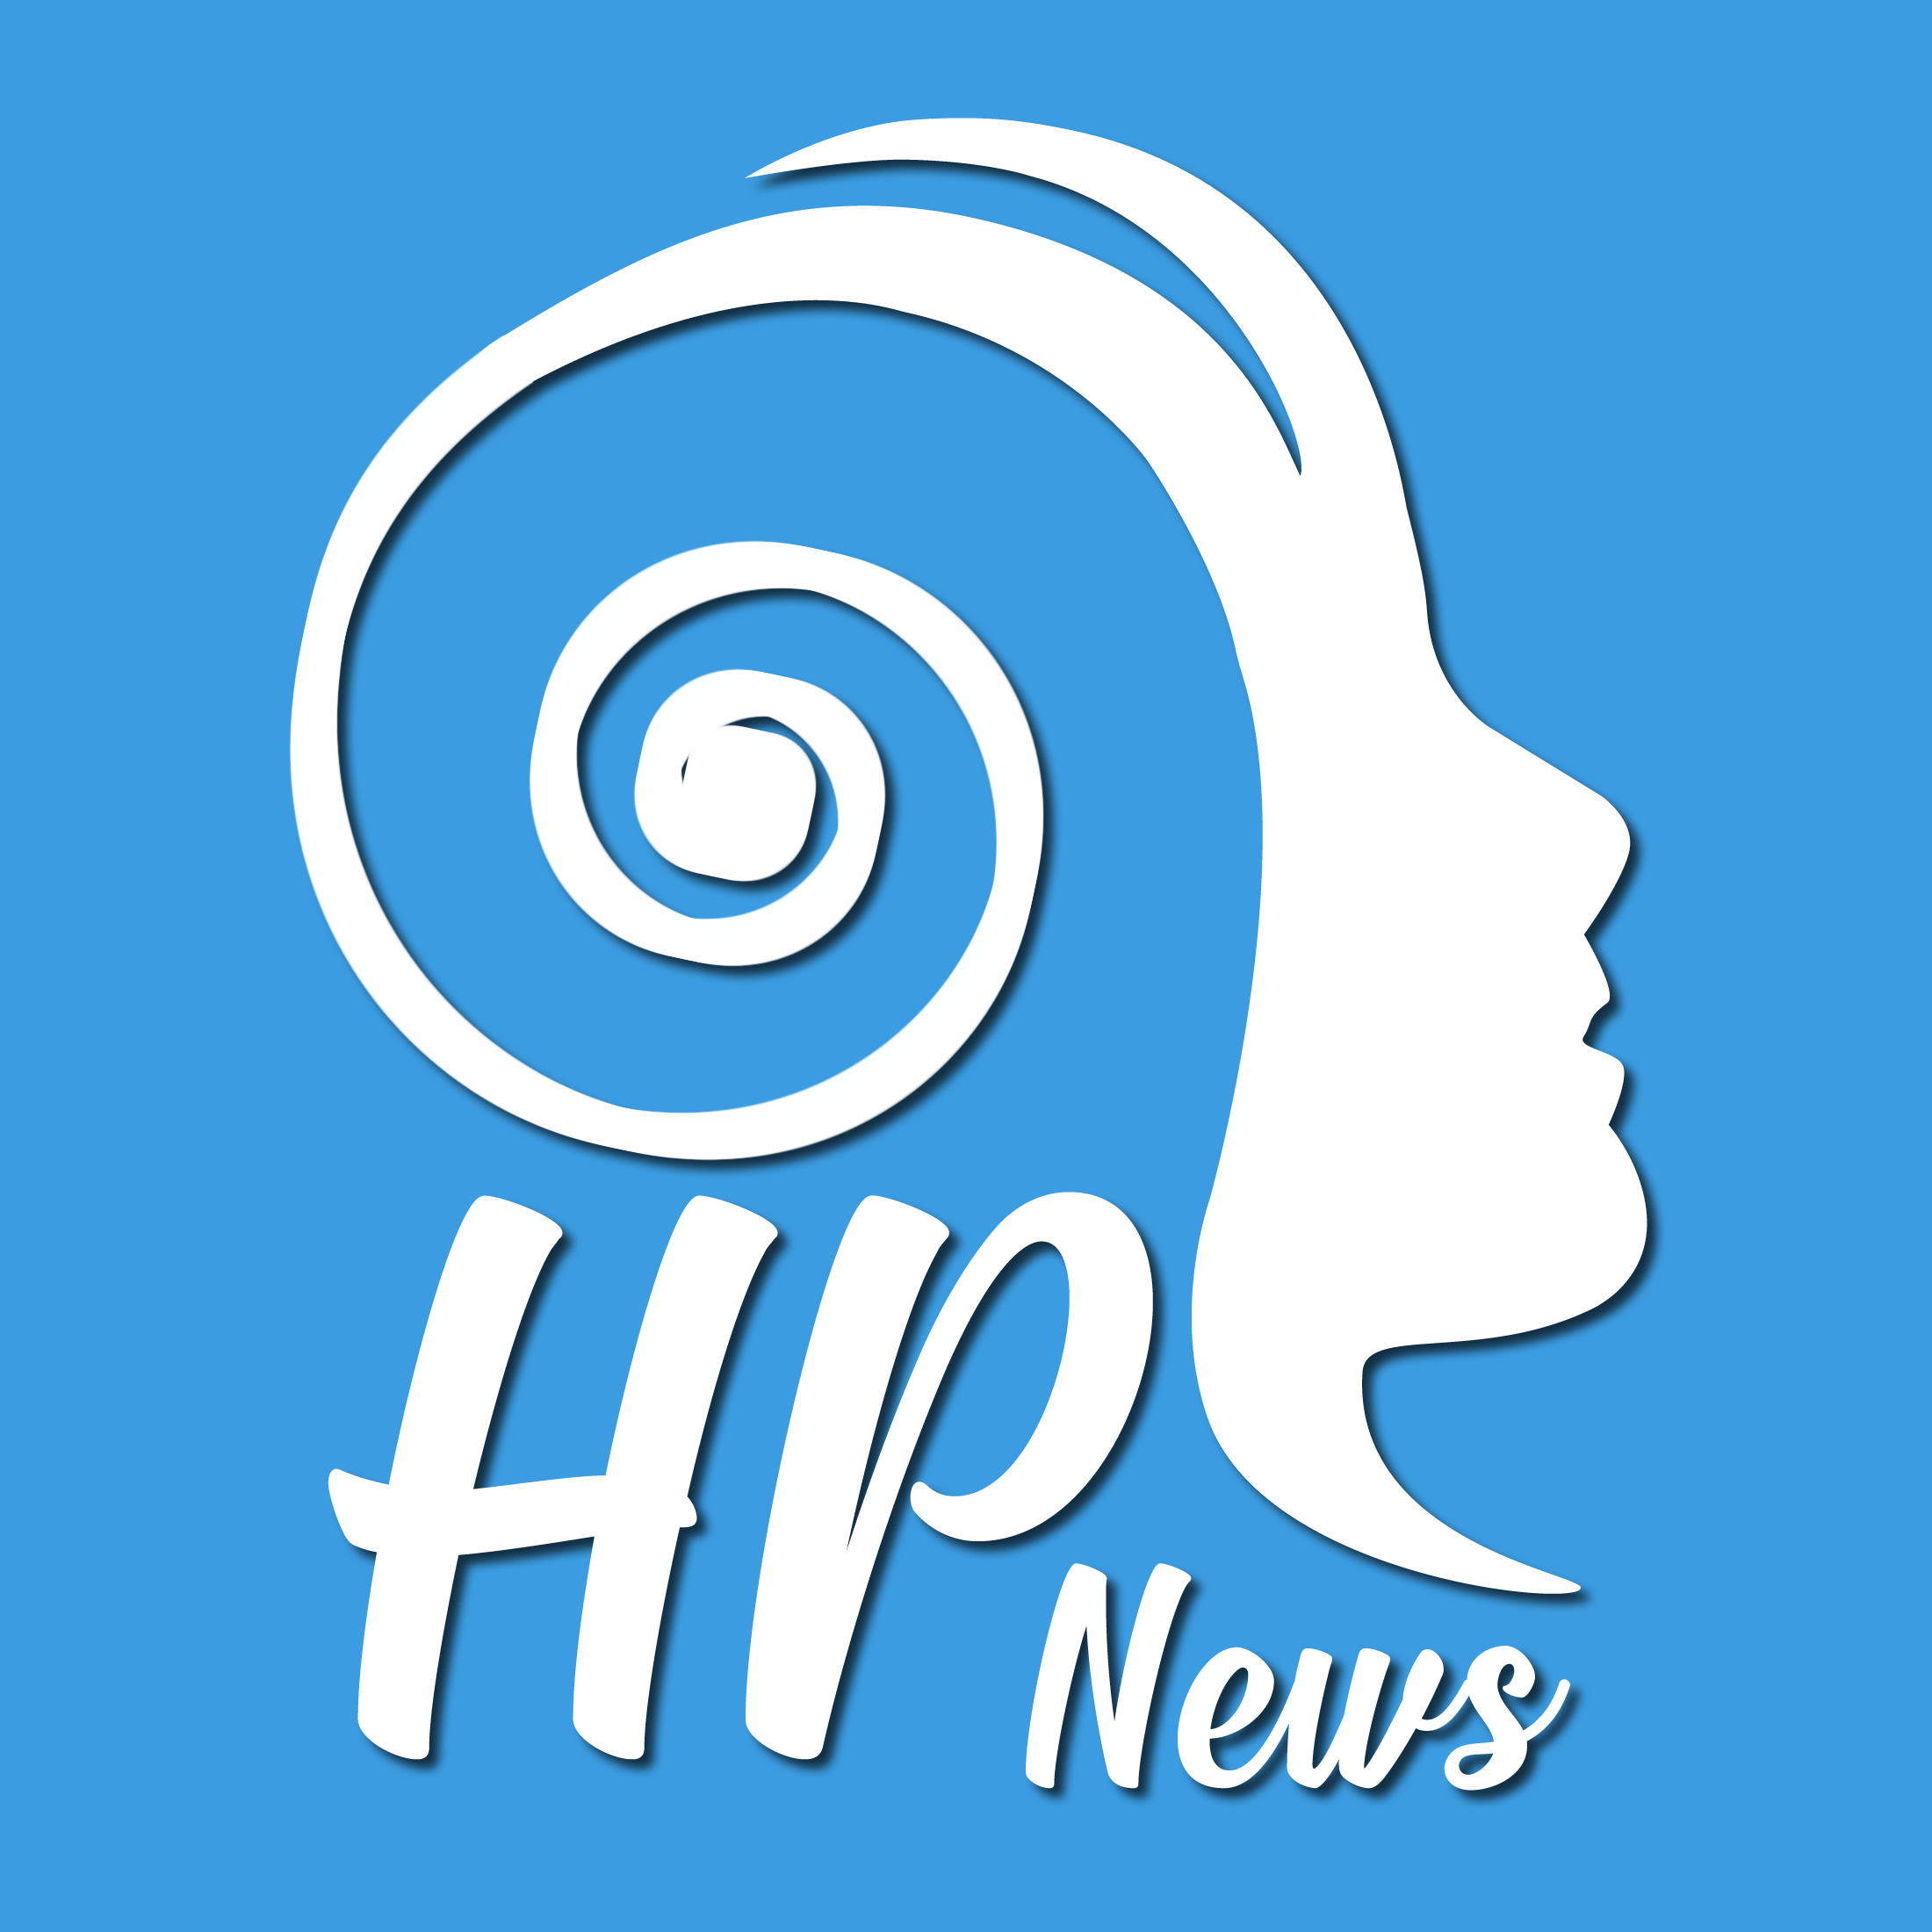 HP News - Hipnose ao pé do ouvido!